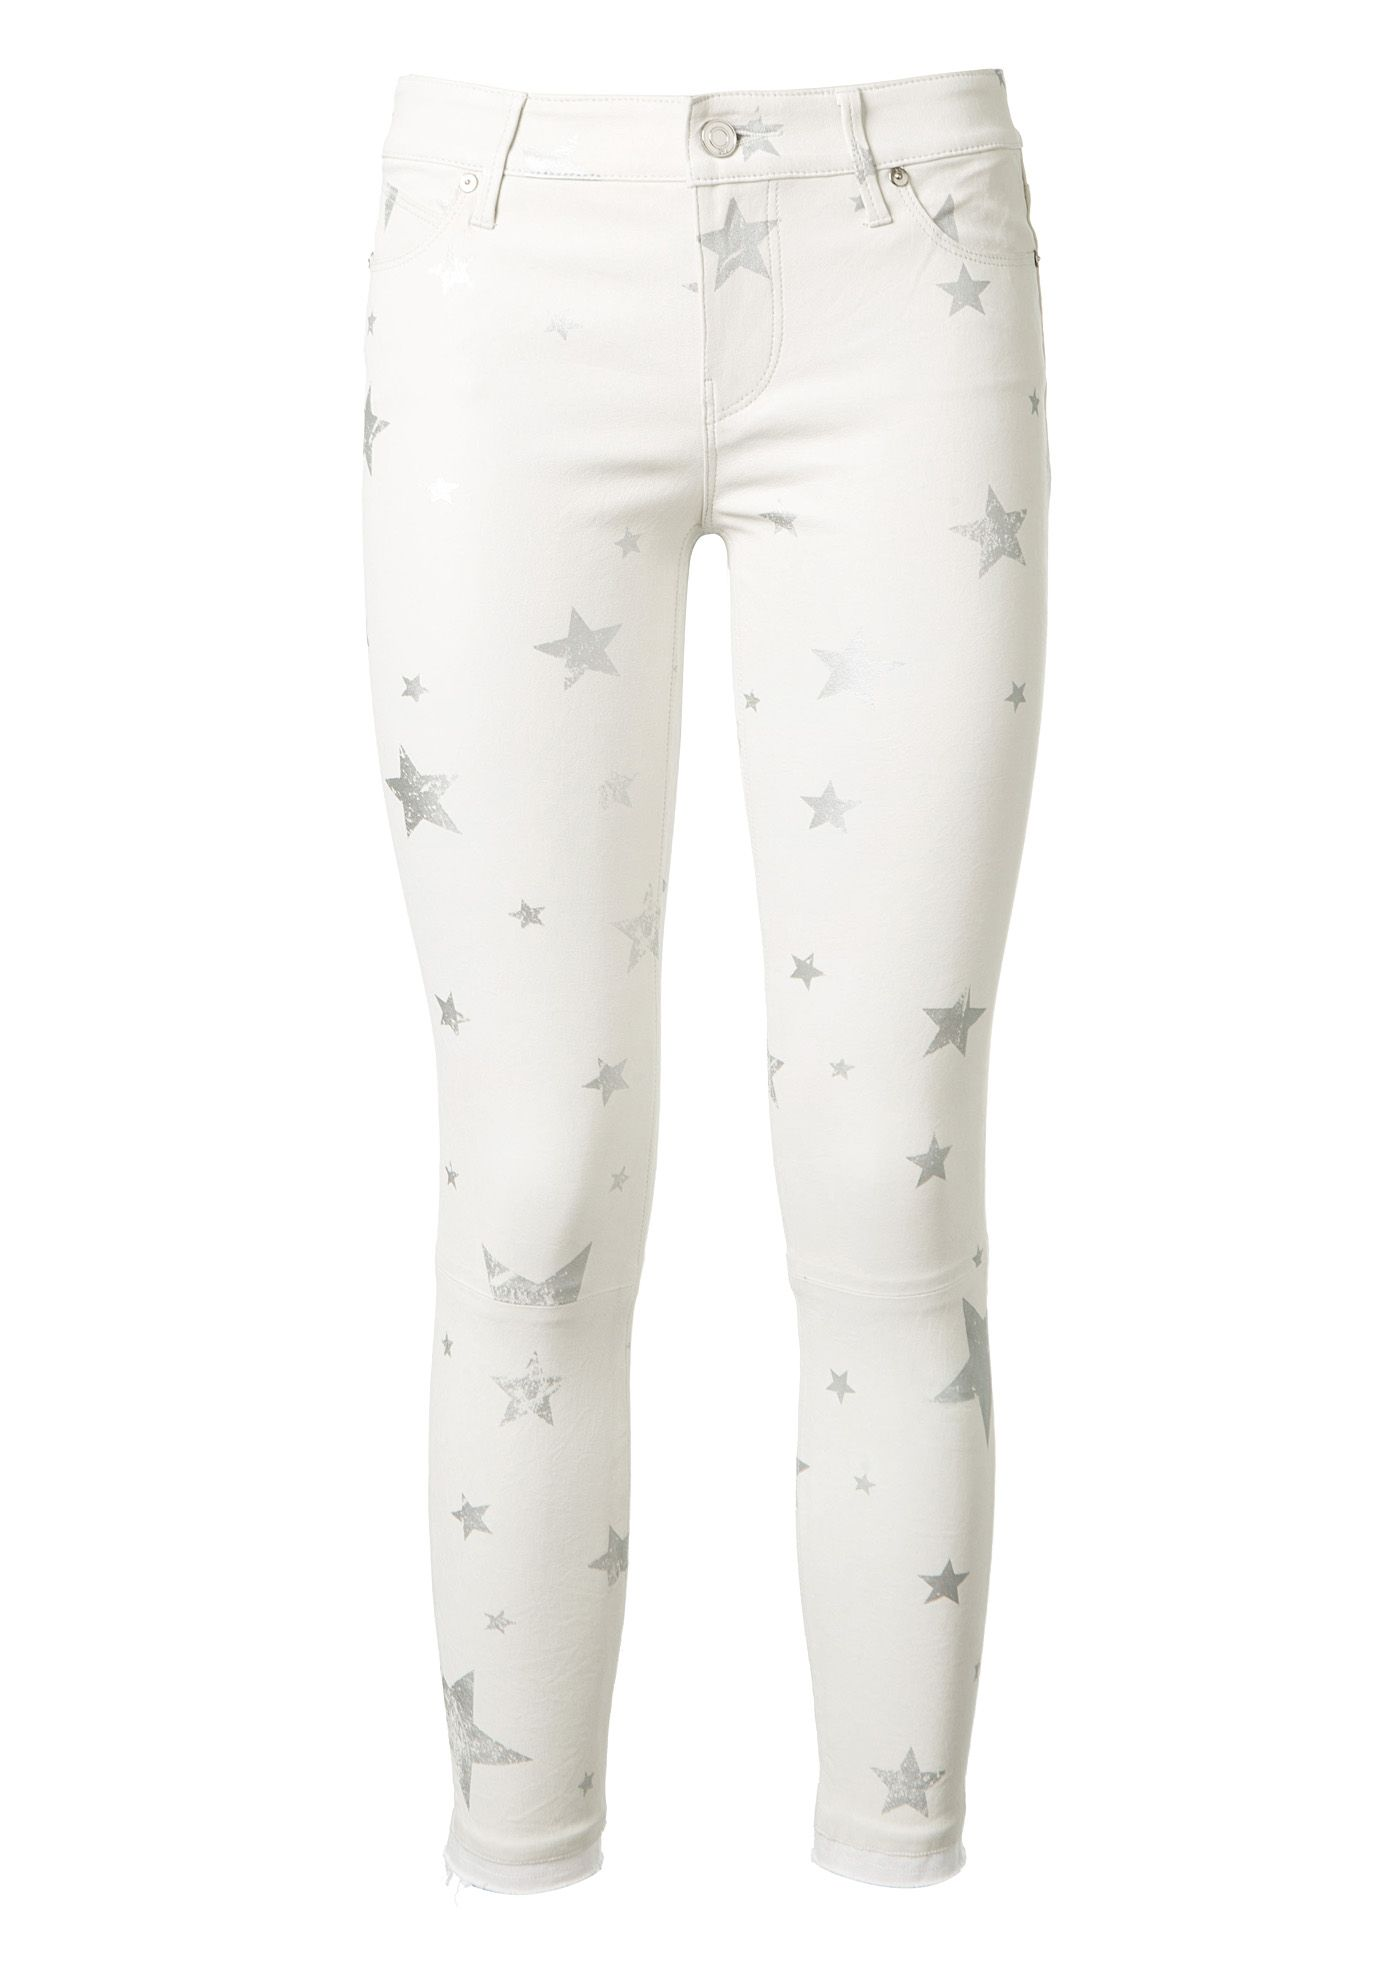 9e1247d98c RTA Rta White Leather Pants With Used Silver Stars Print.  rta  cloth